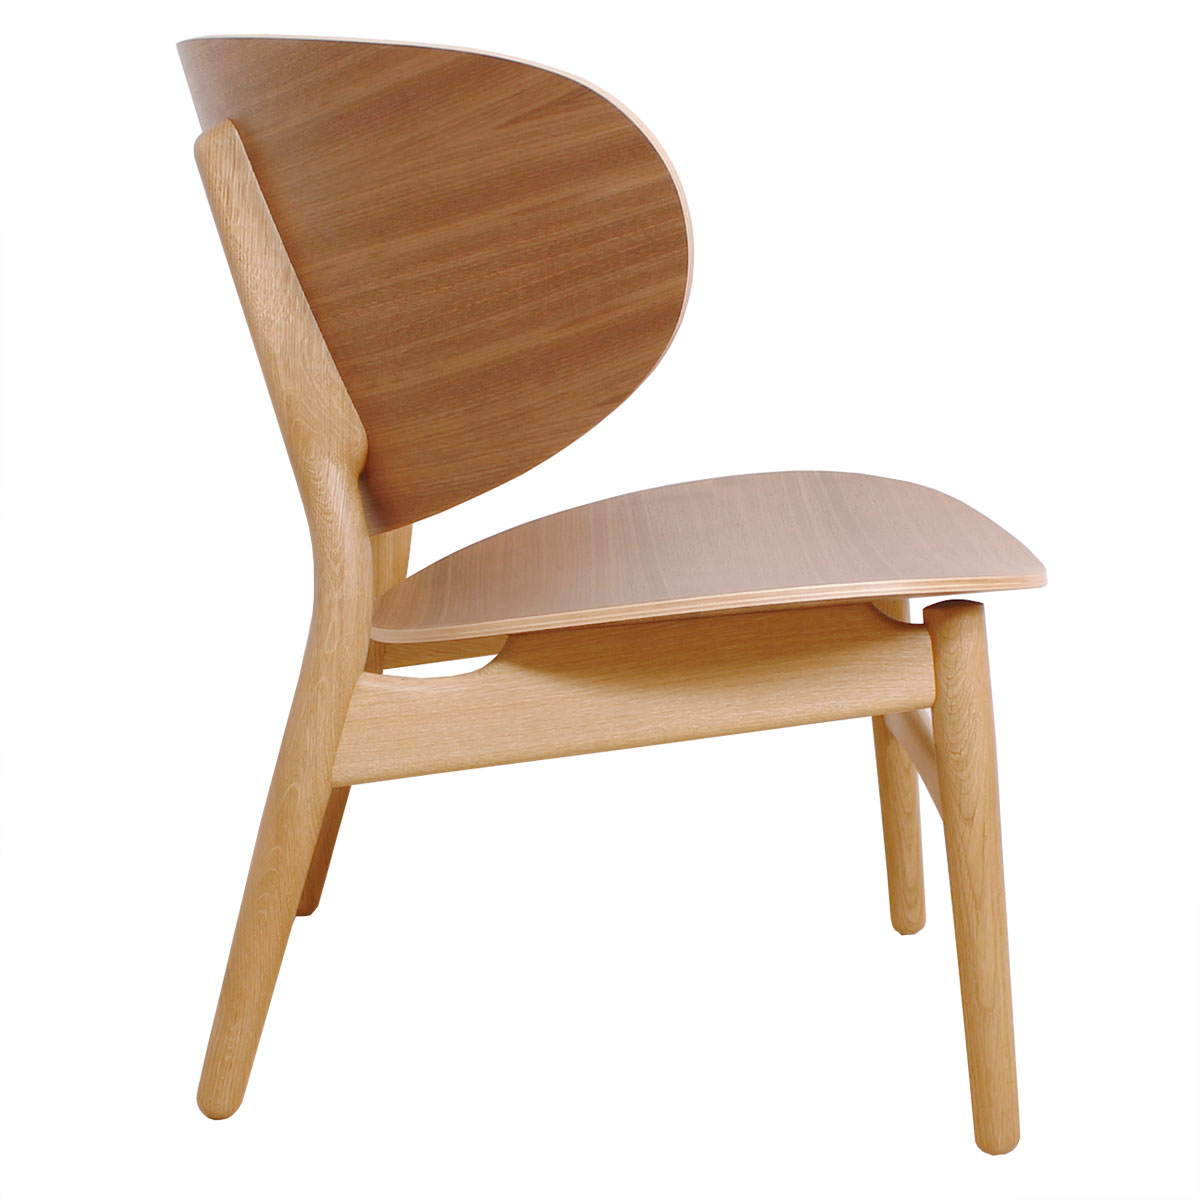 NEW Hans Wegner Venus Chair for GETAMA